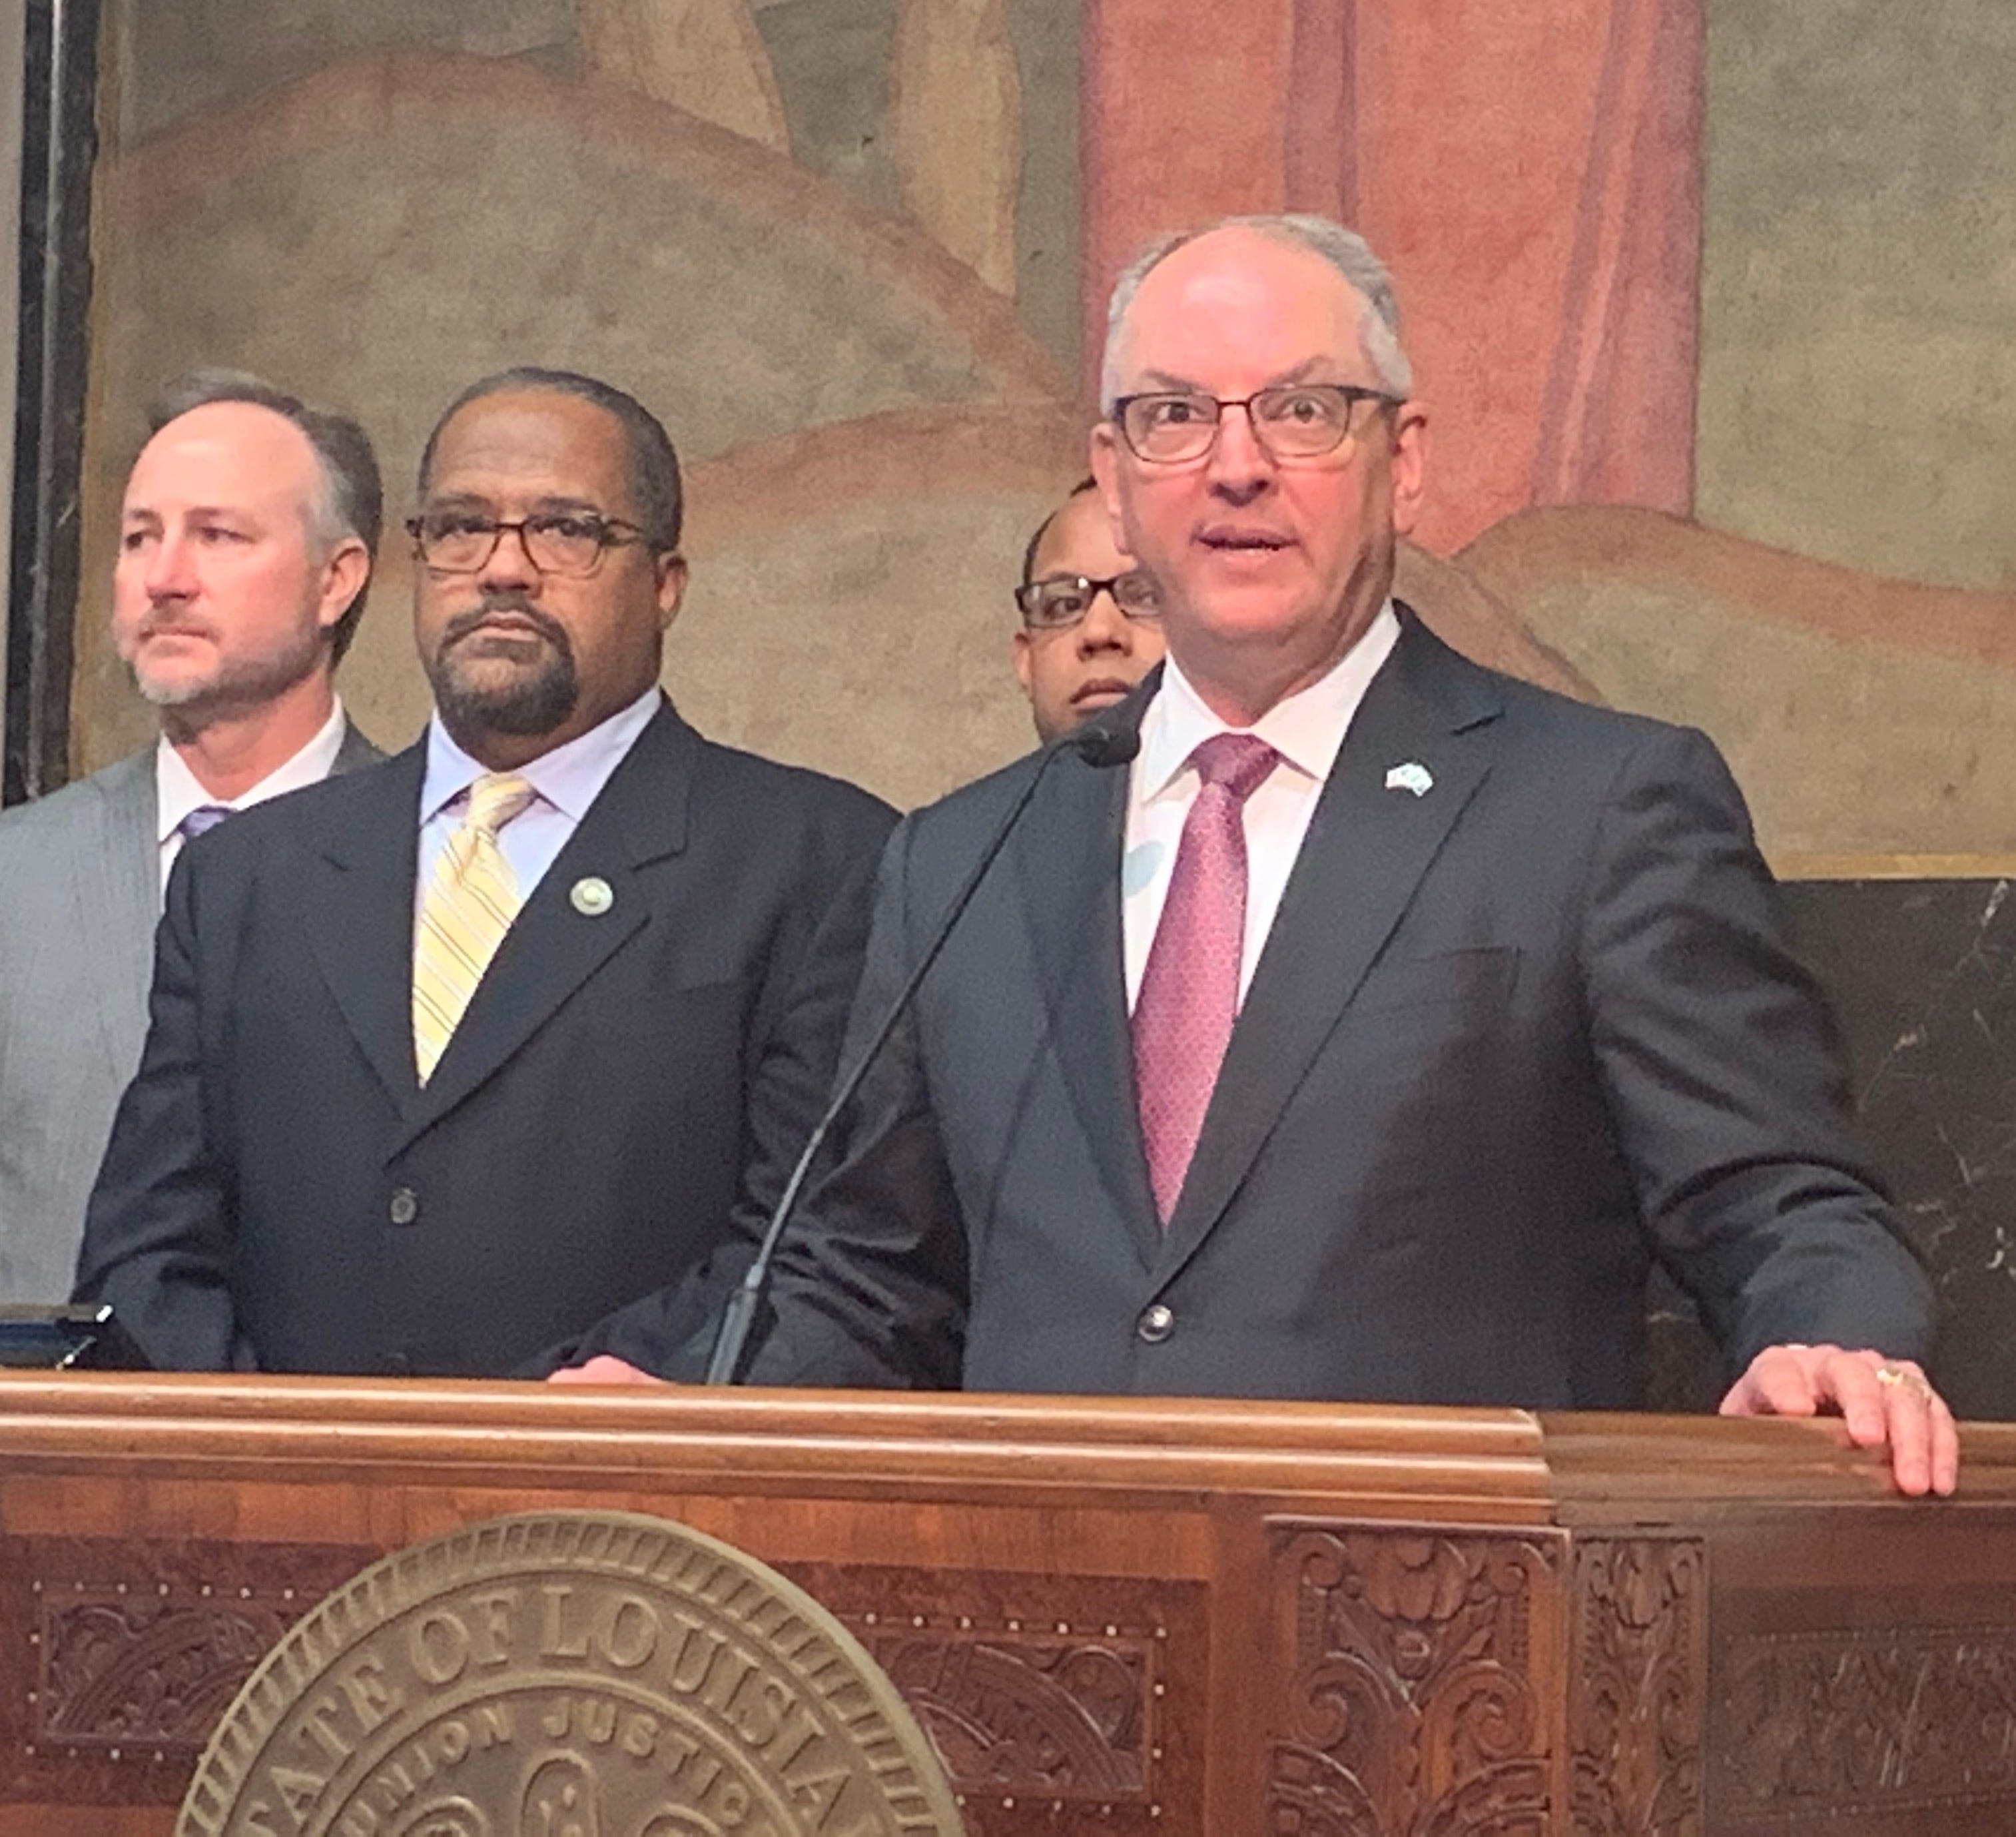 """Louisiana Gov. John Bel Edwards calledthe state's $3.2 billion from the American Rescue plan a """"once-in-a-lifetime opportunity"""" tomake long-needed improvements in his state."""